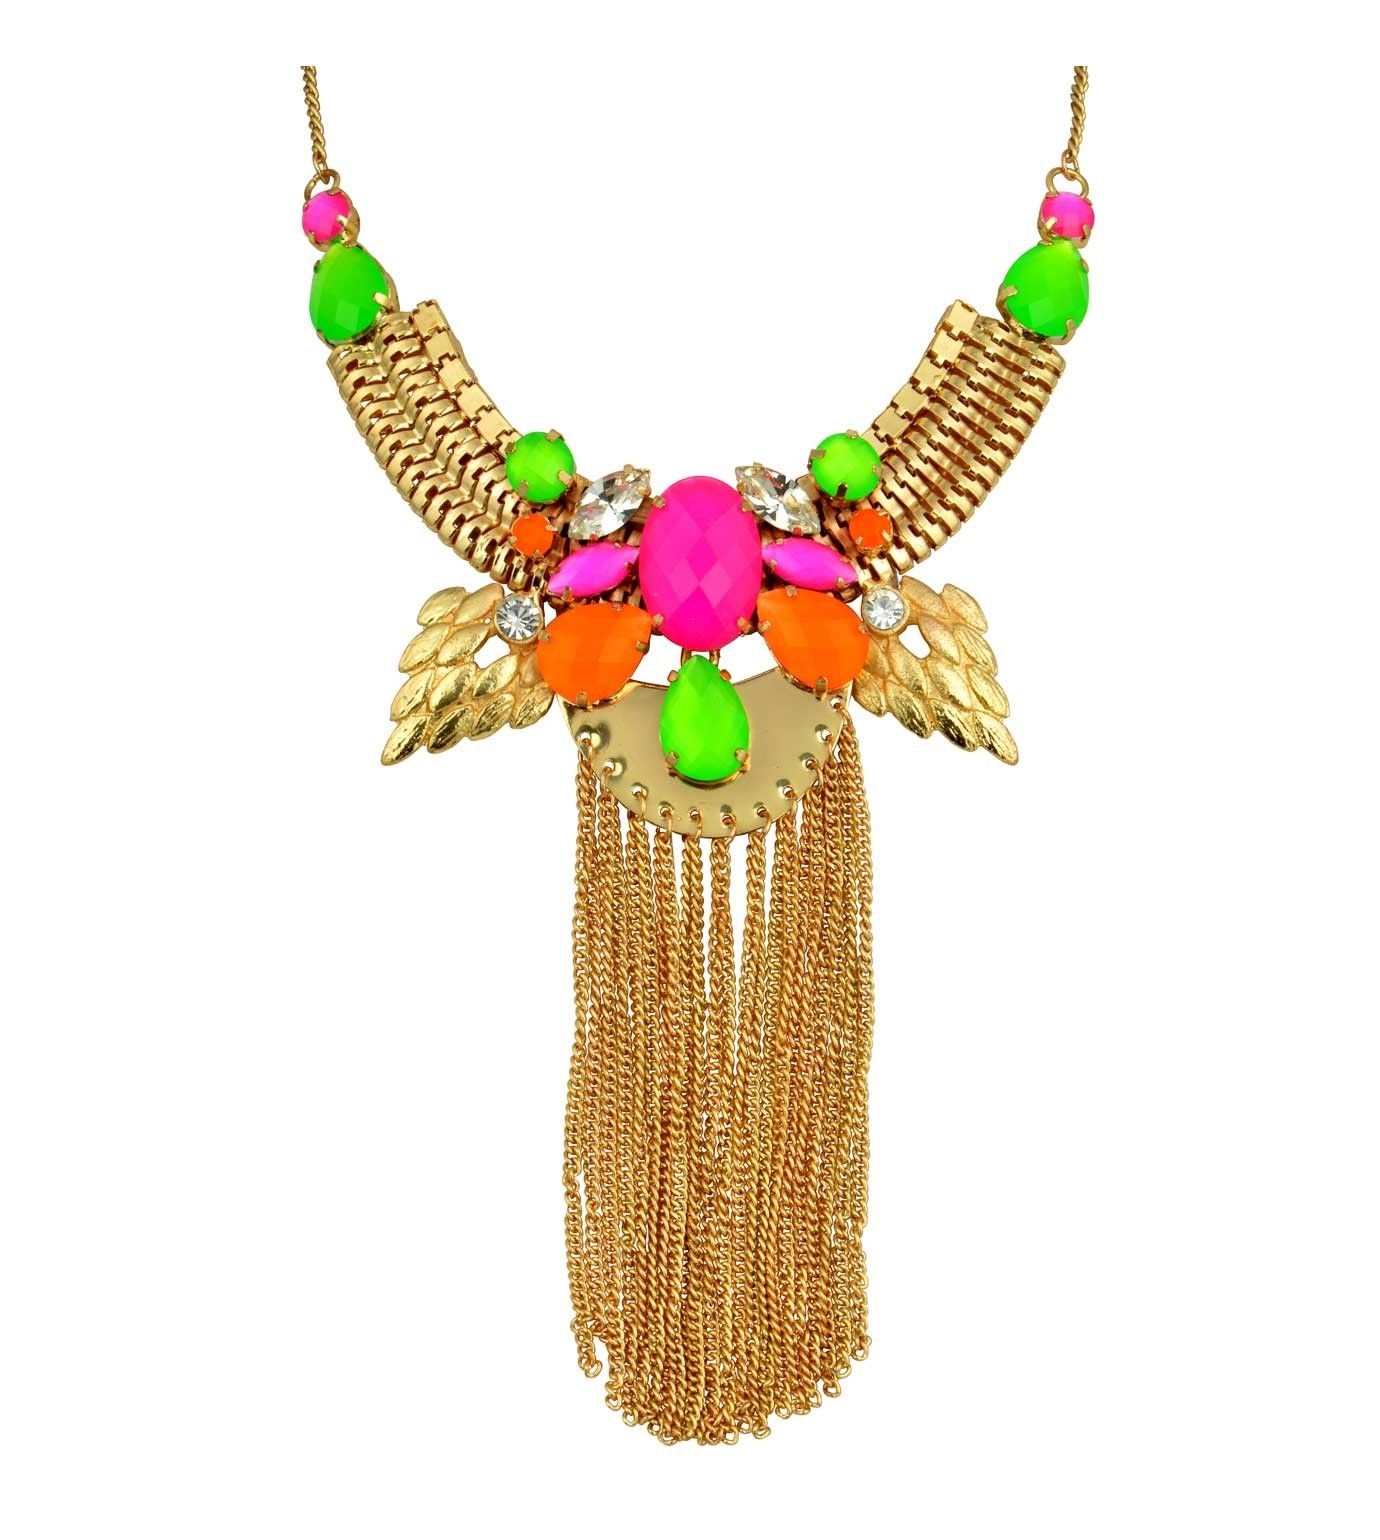 Neon Tassel Necklace {www.celliana.com}